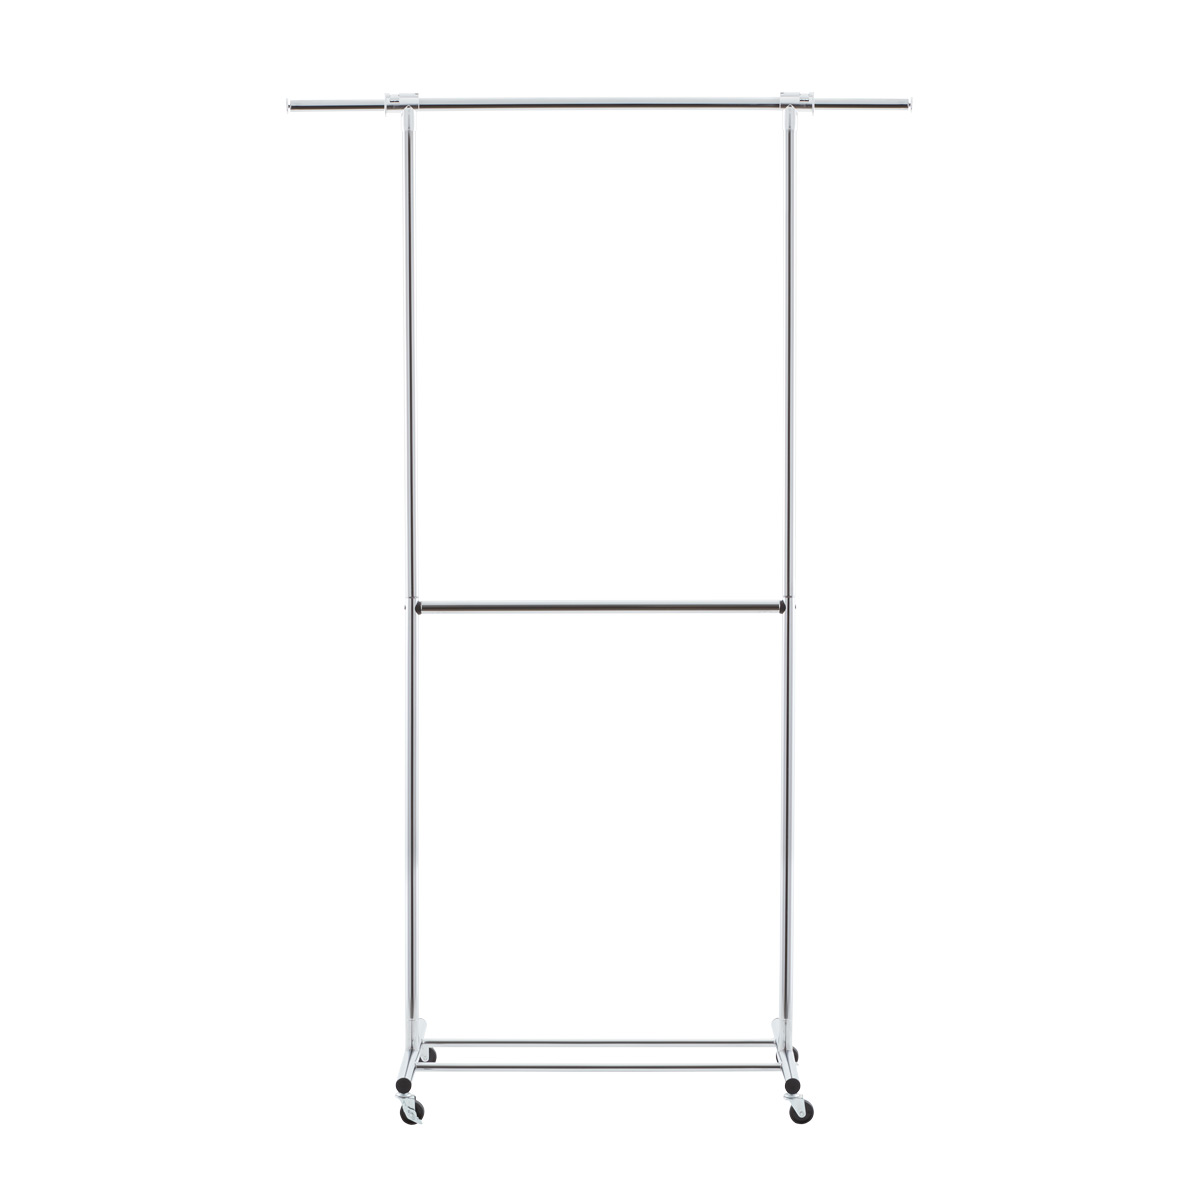 Clothes Rack   Chrome Metal Double Hang Clothes Rack | The Container Store